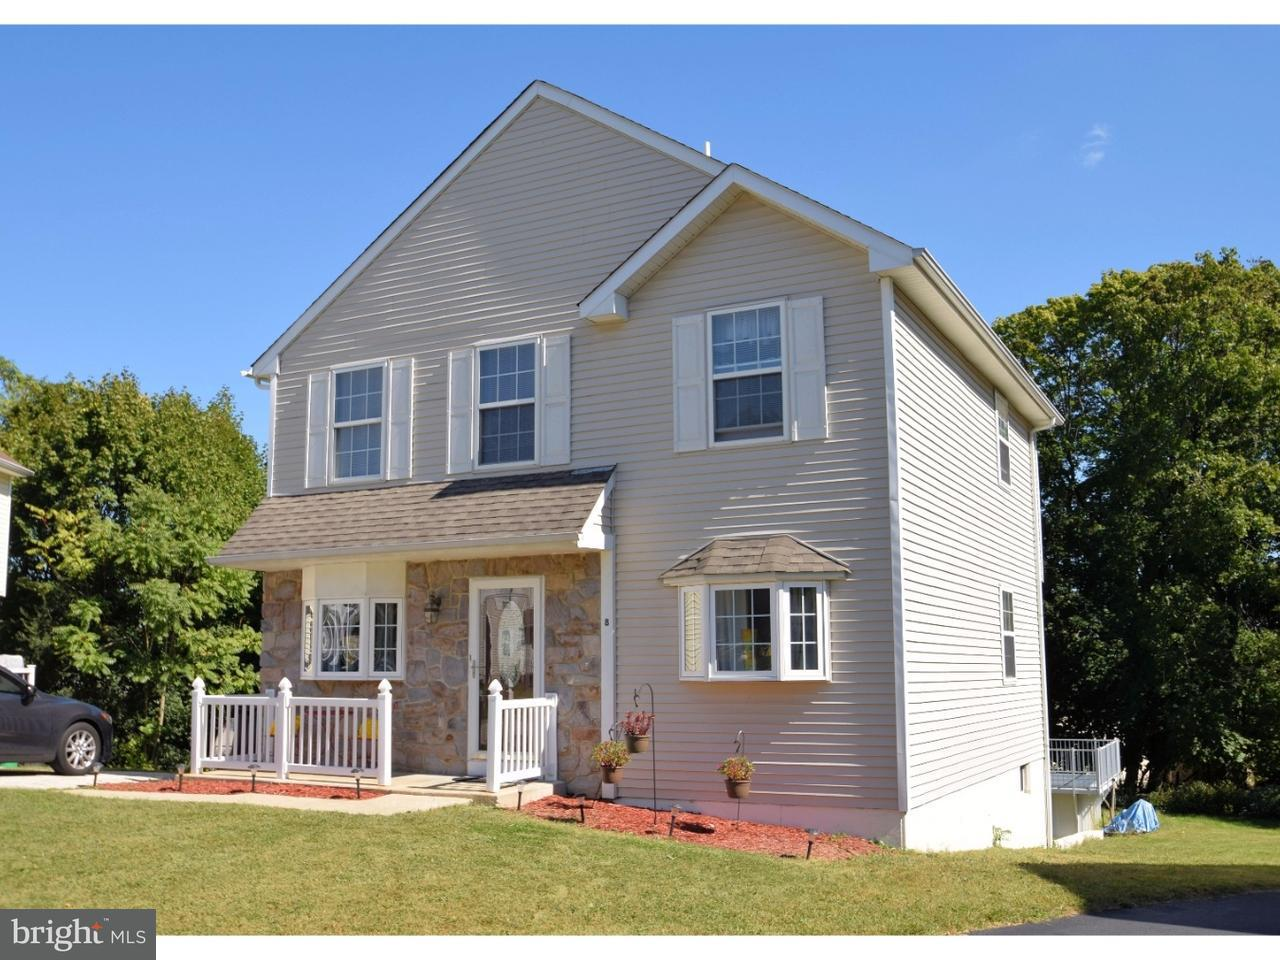 Single Family Home for Sale at 8 CHRISTINE Court Folcroft, Pennsylvania 19032 United States